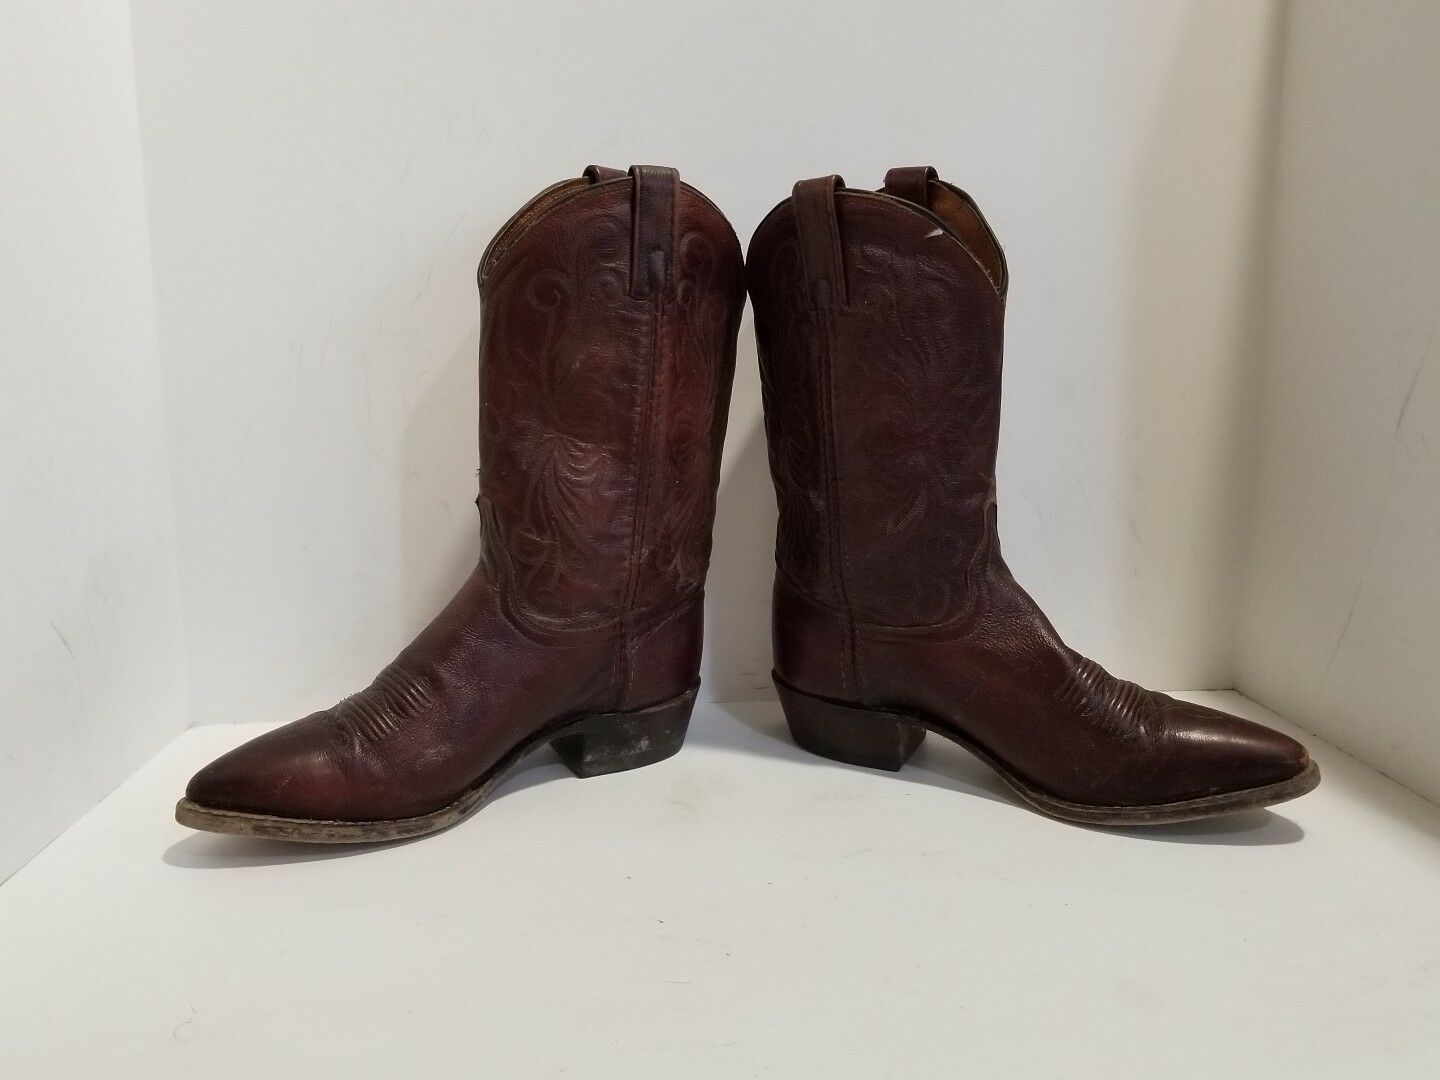 Dan Post Wmens Brown Leather Western Boots Size 7.5 M